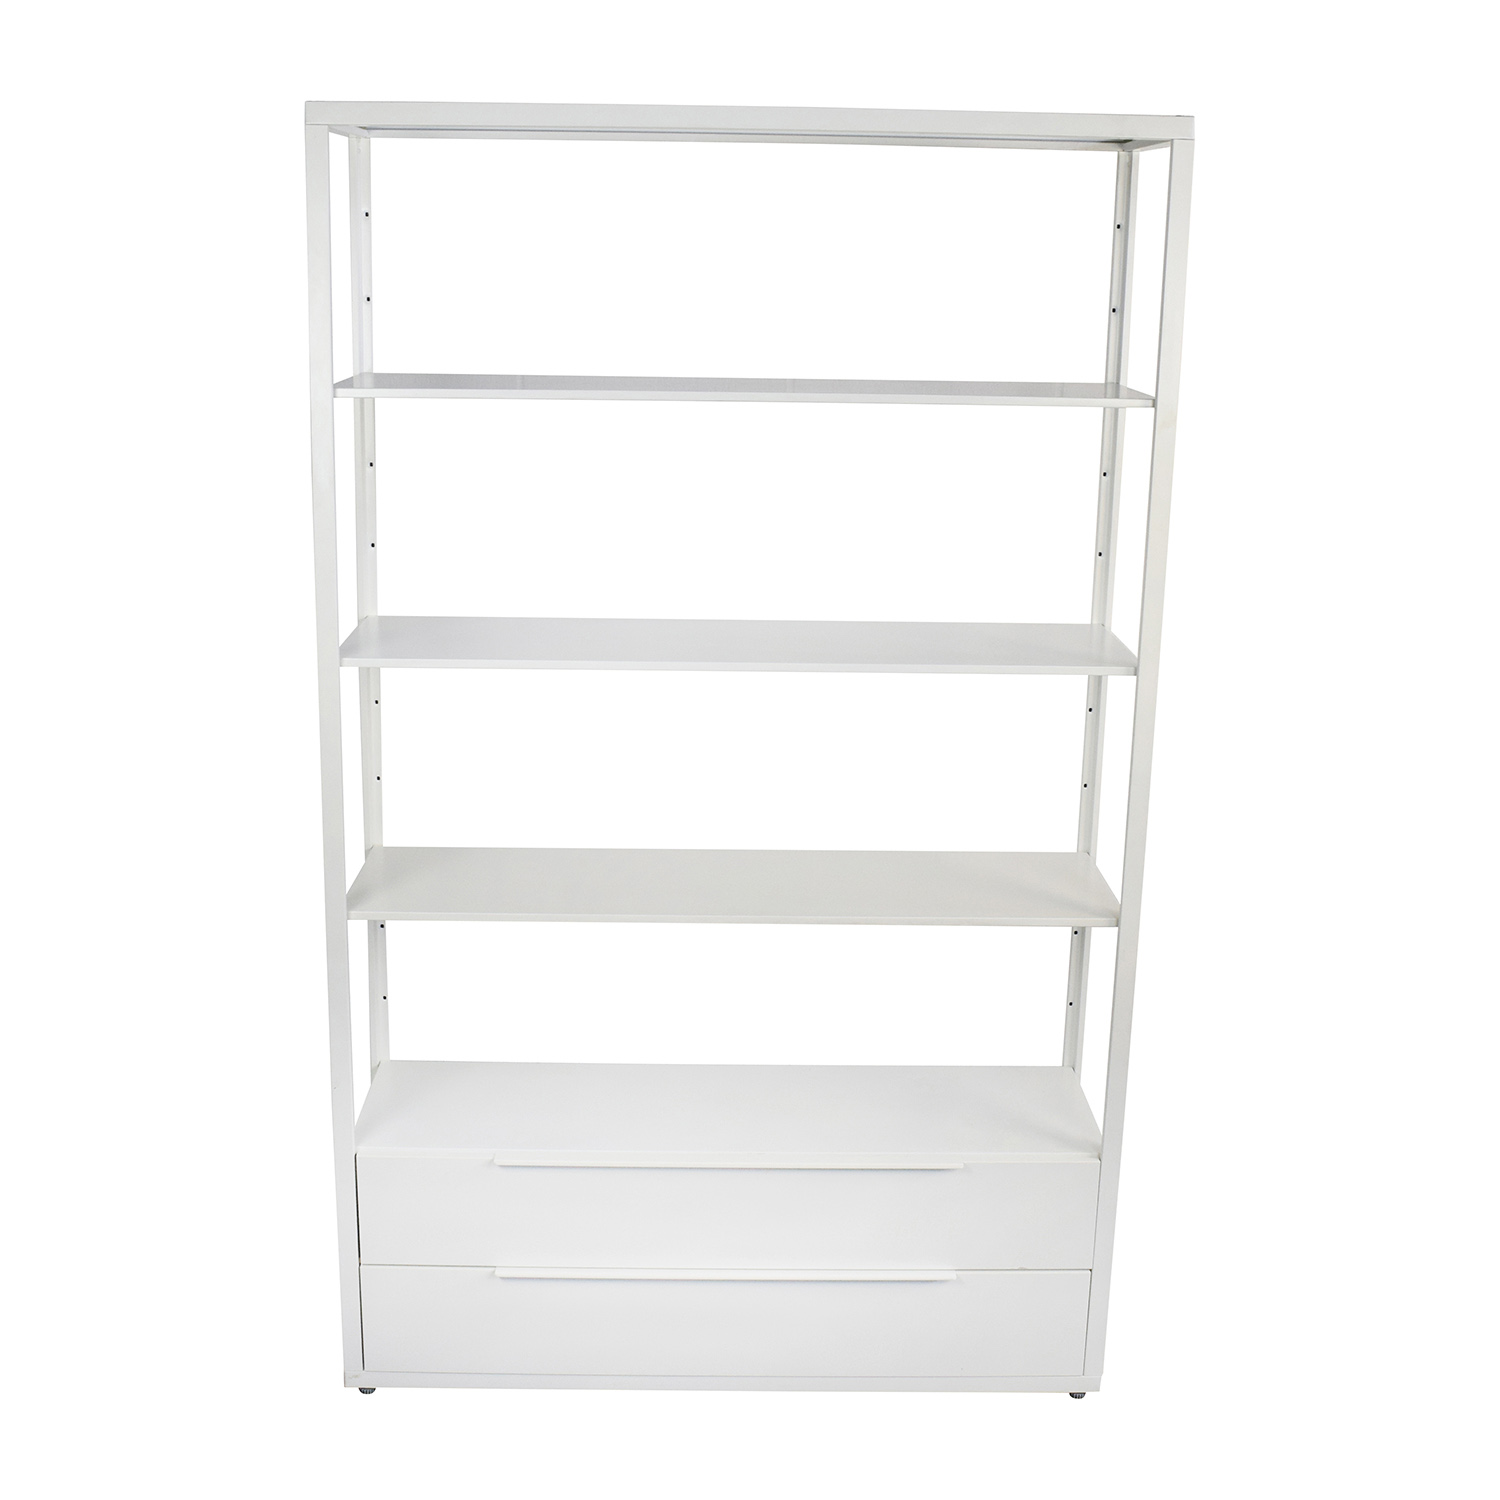 IKEA White Shelving Unit with Drawers / Bookcases & Shelving